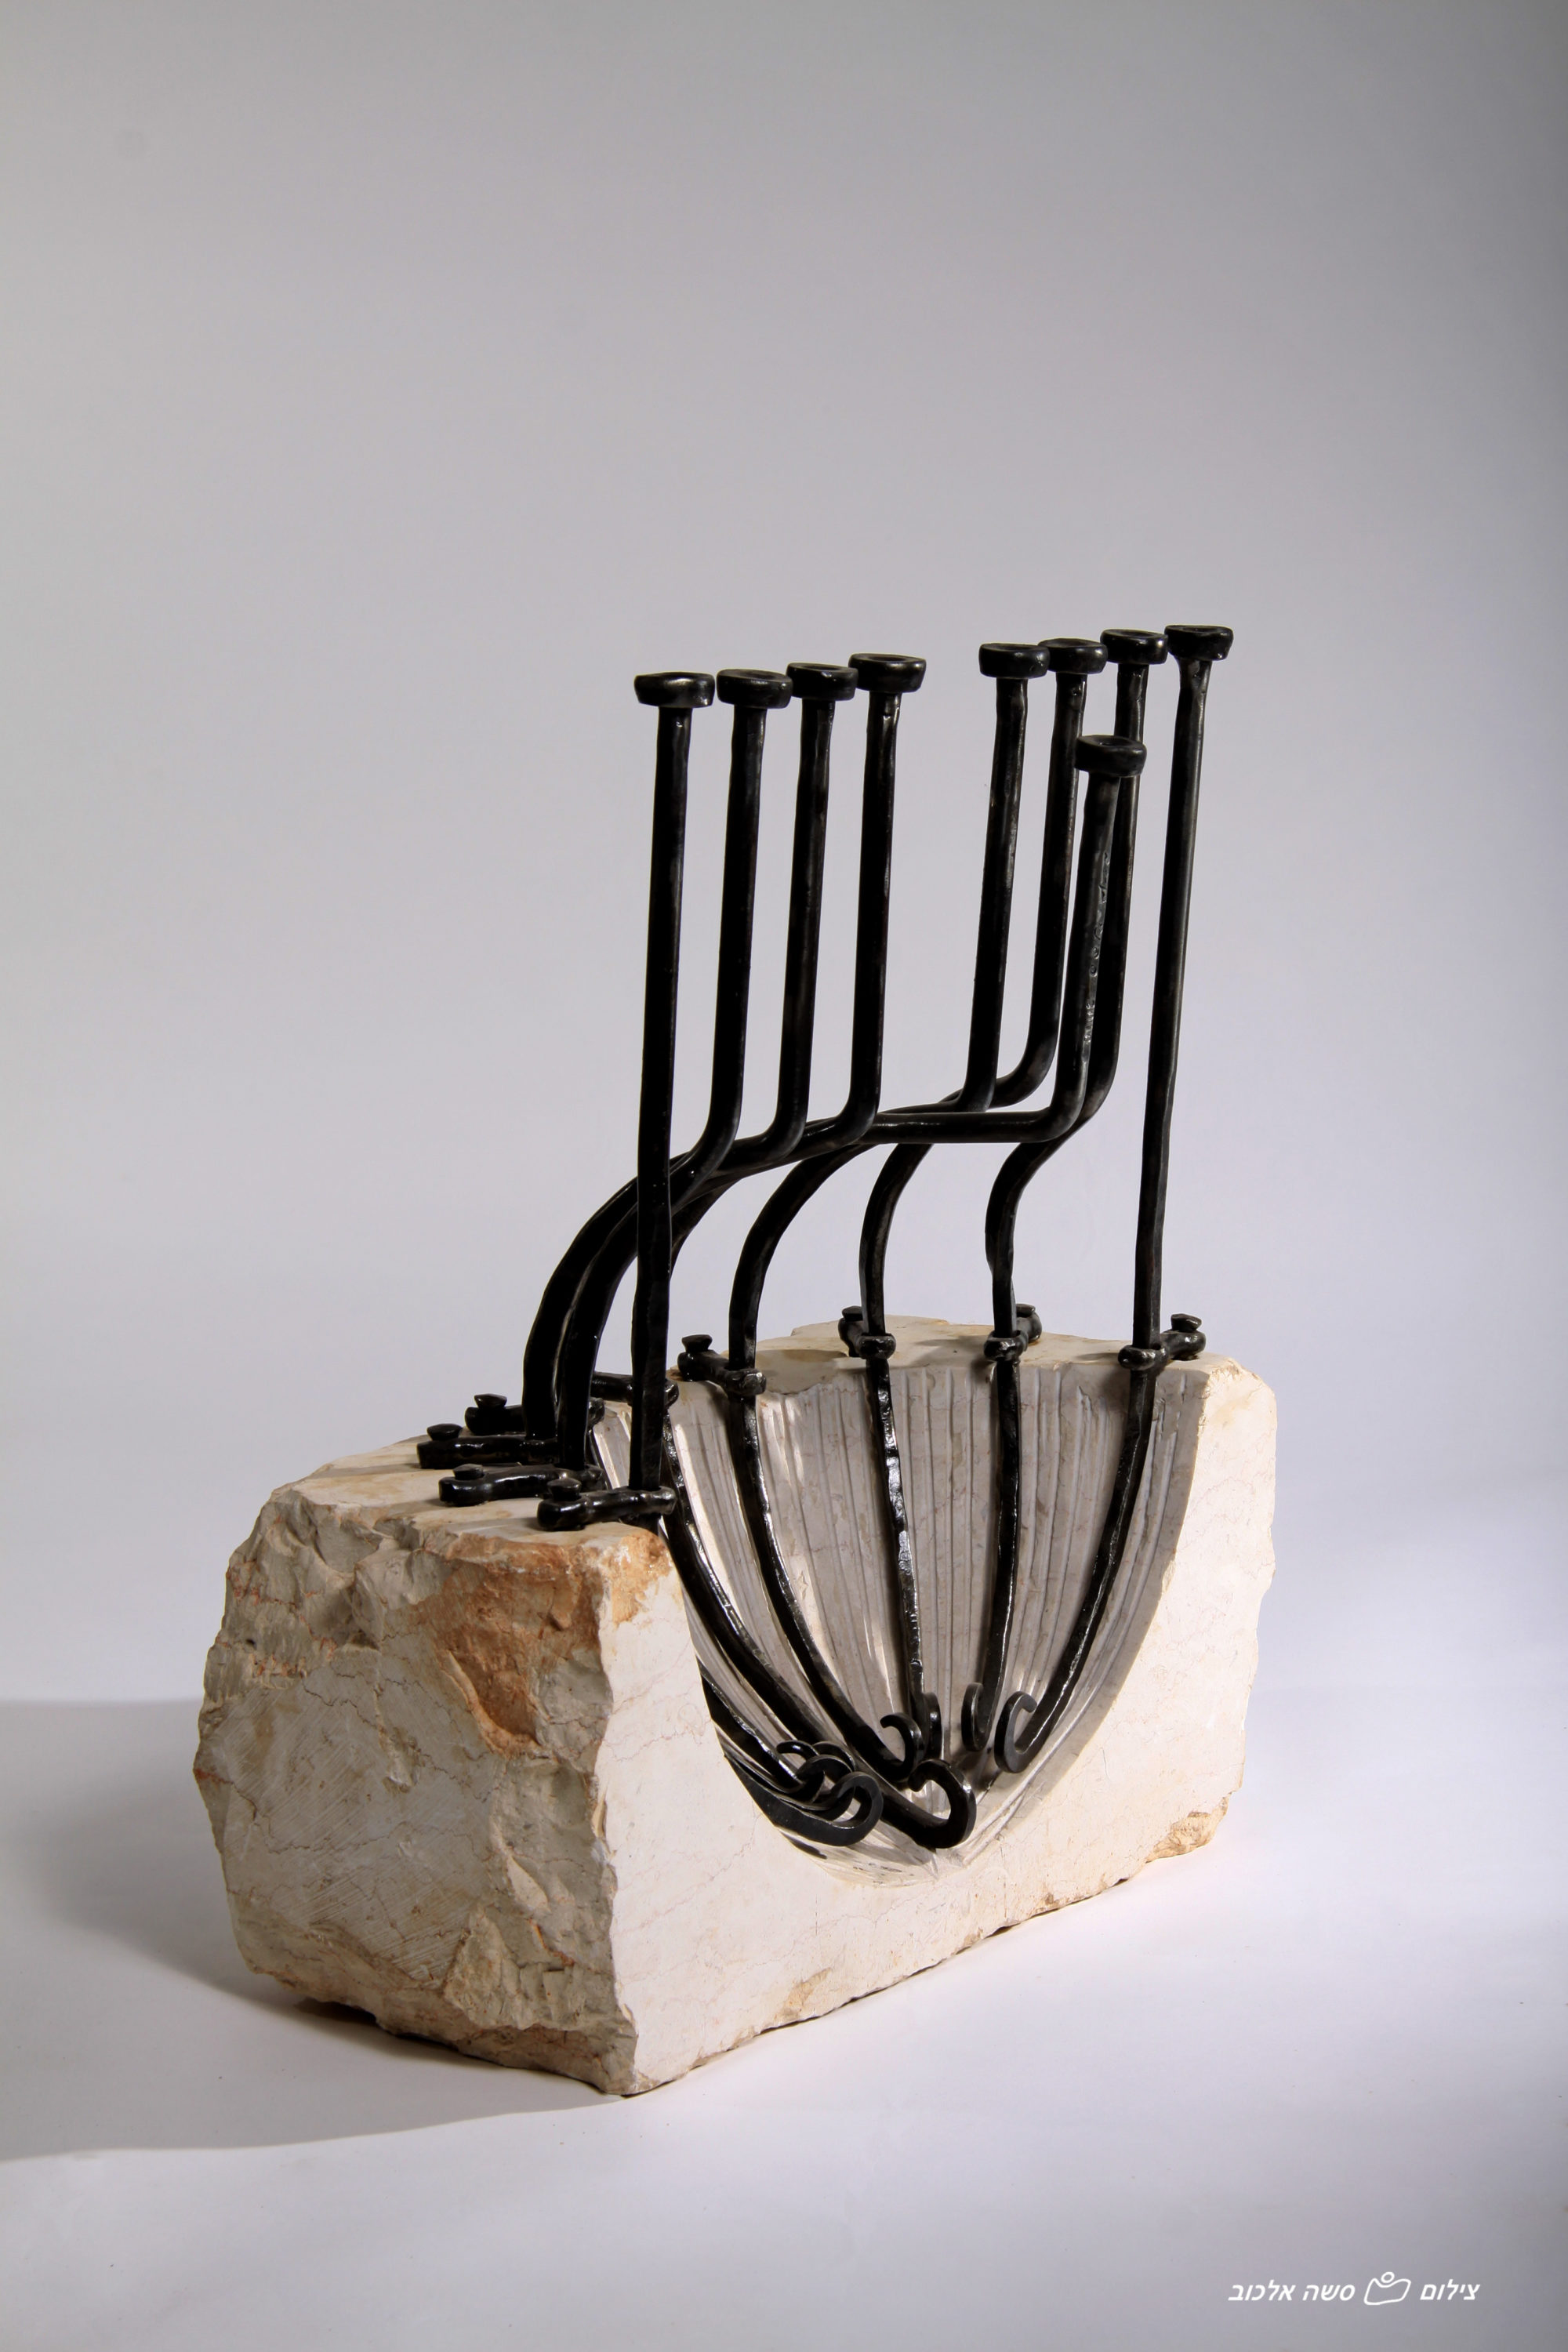 'Shell' - Shell-shaped Hanucka Menorah of Iron & Jerusalem stone